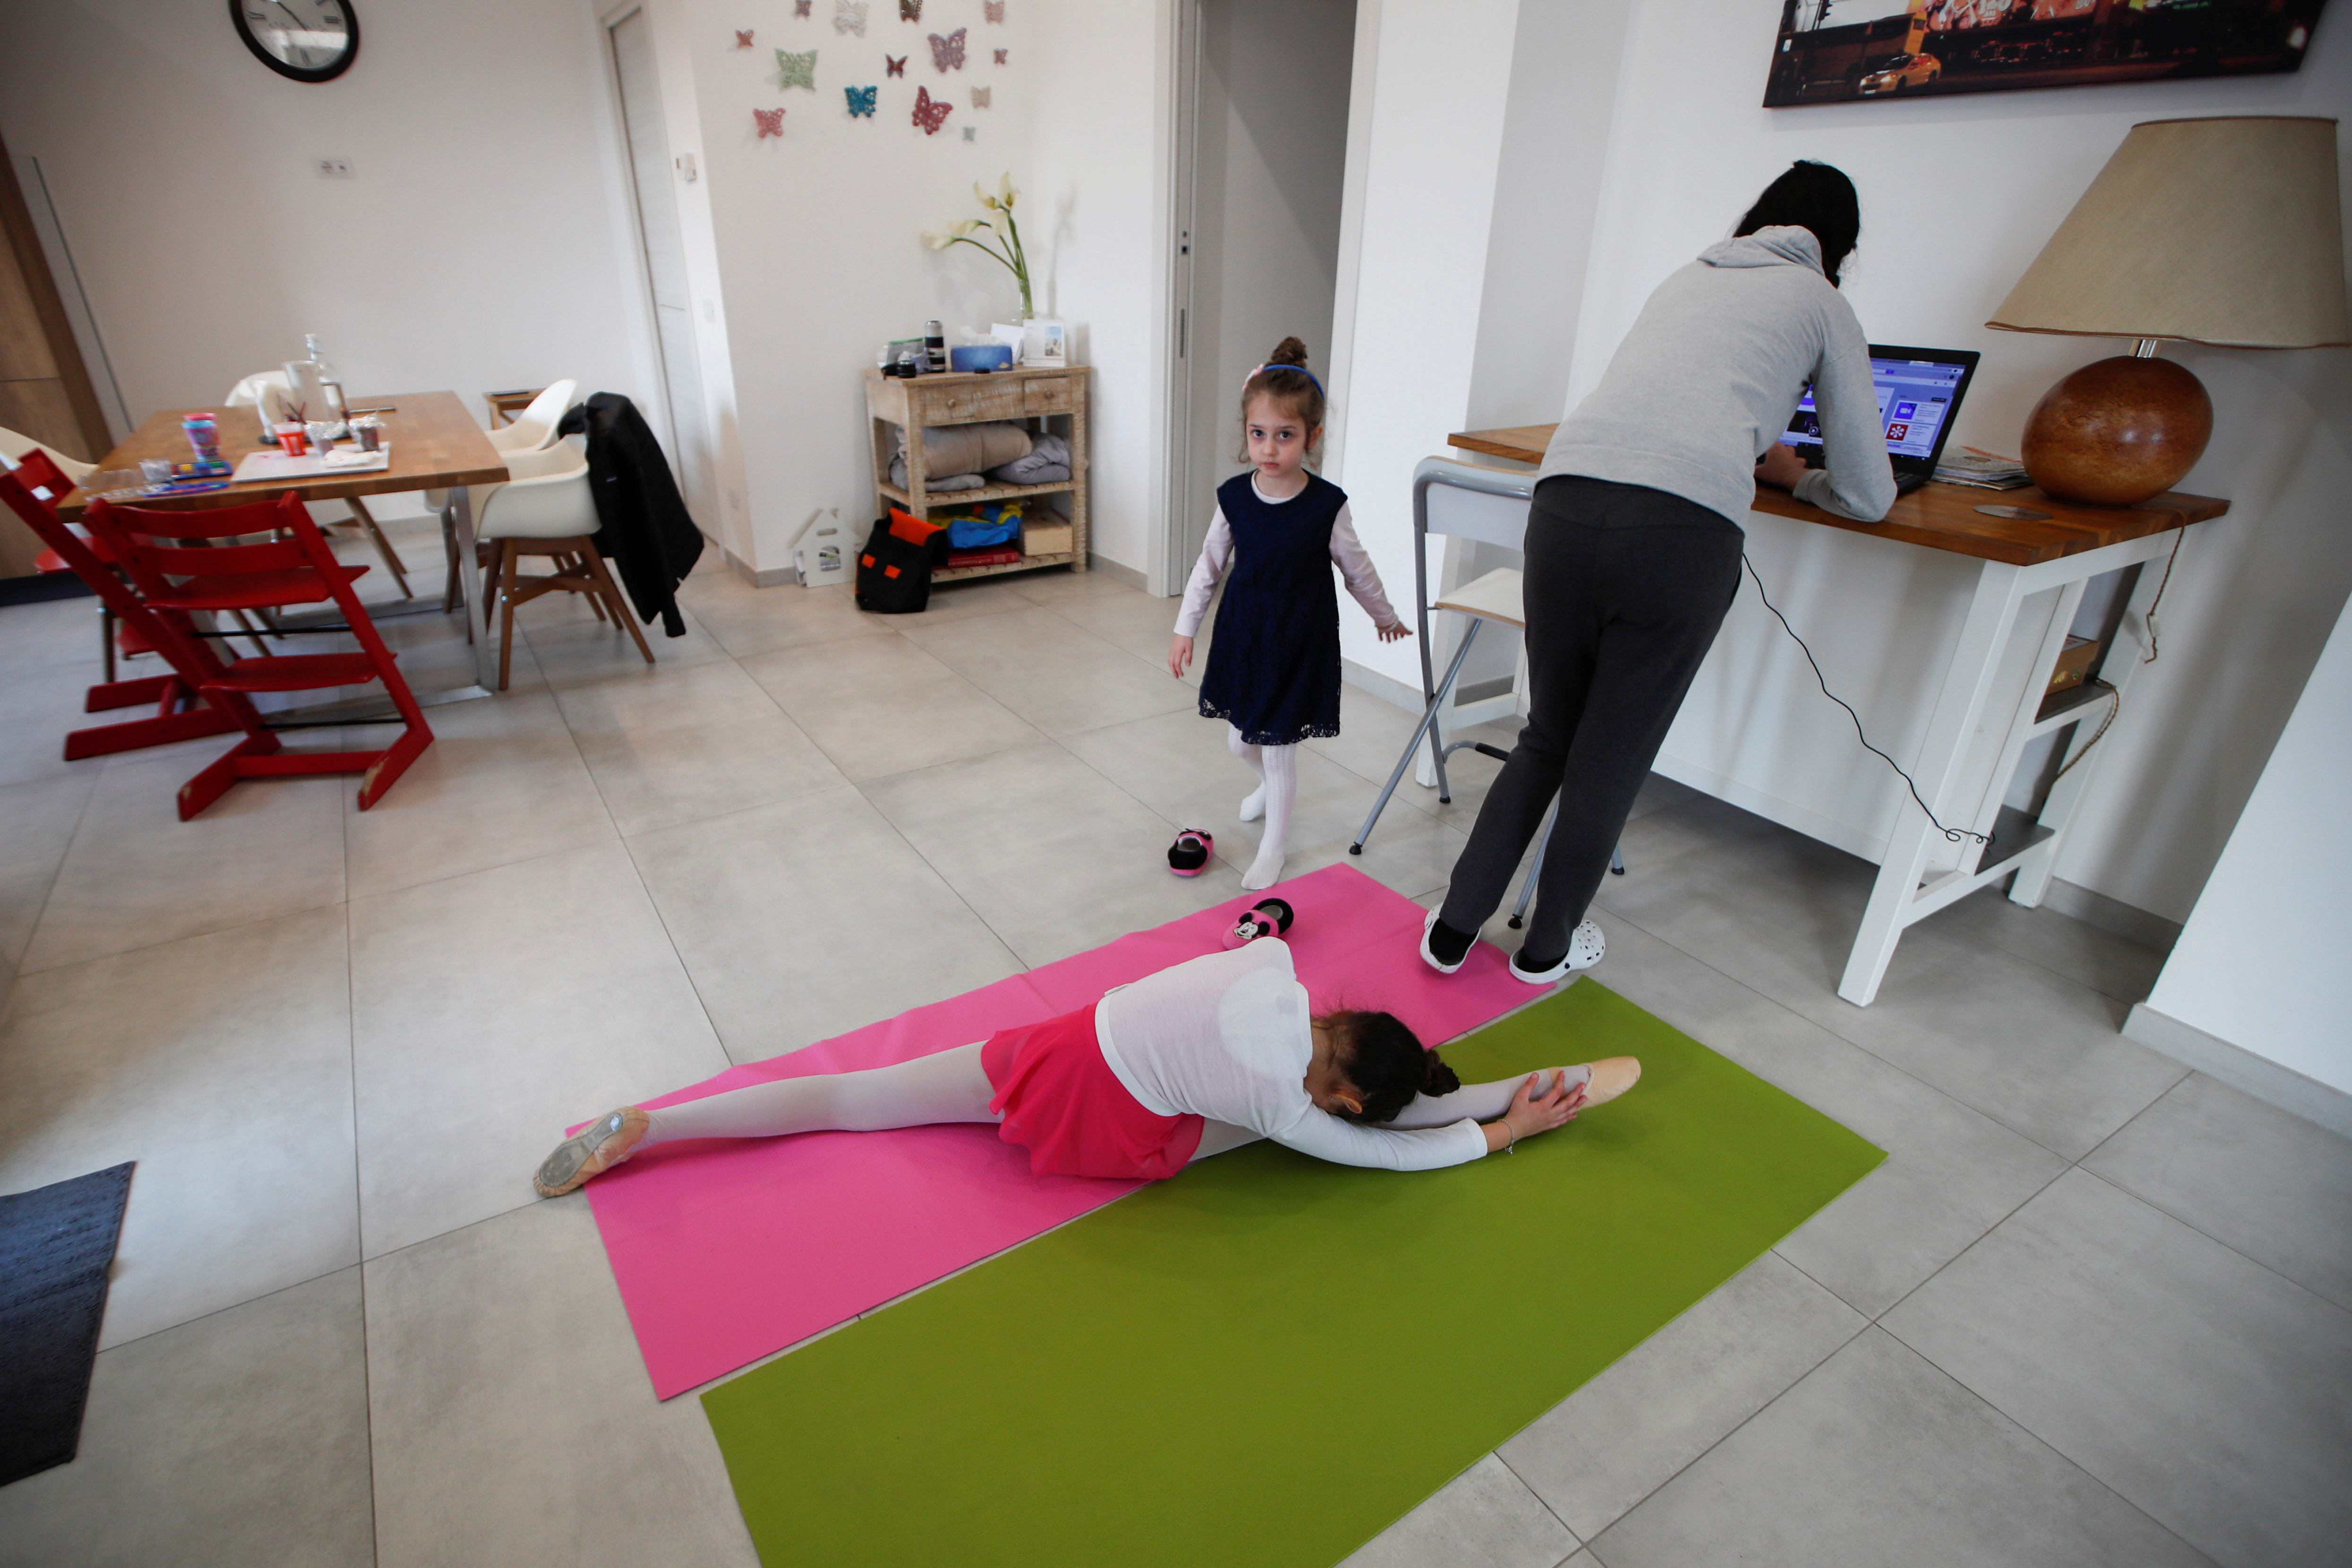 Michela Perrini, 9, practices ballet as her sister Martina, 5,  and her mother Vanna stand in their living room in the small southern historical town of Cisternino, Italy, March 31, 2020. Picture taken March 31, 2020. Perrini family have dealt with Italy?s strict lockdown measures to combat the spread of the coronavirus disease (COVID-19) with two young daughters studying at home, and owning three restaurants and a bar that can?t fully open until June 1.? REUTERS/Alessandro Garofalo - RC2UDG95T7TG